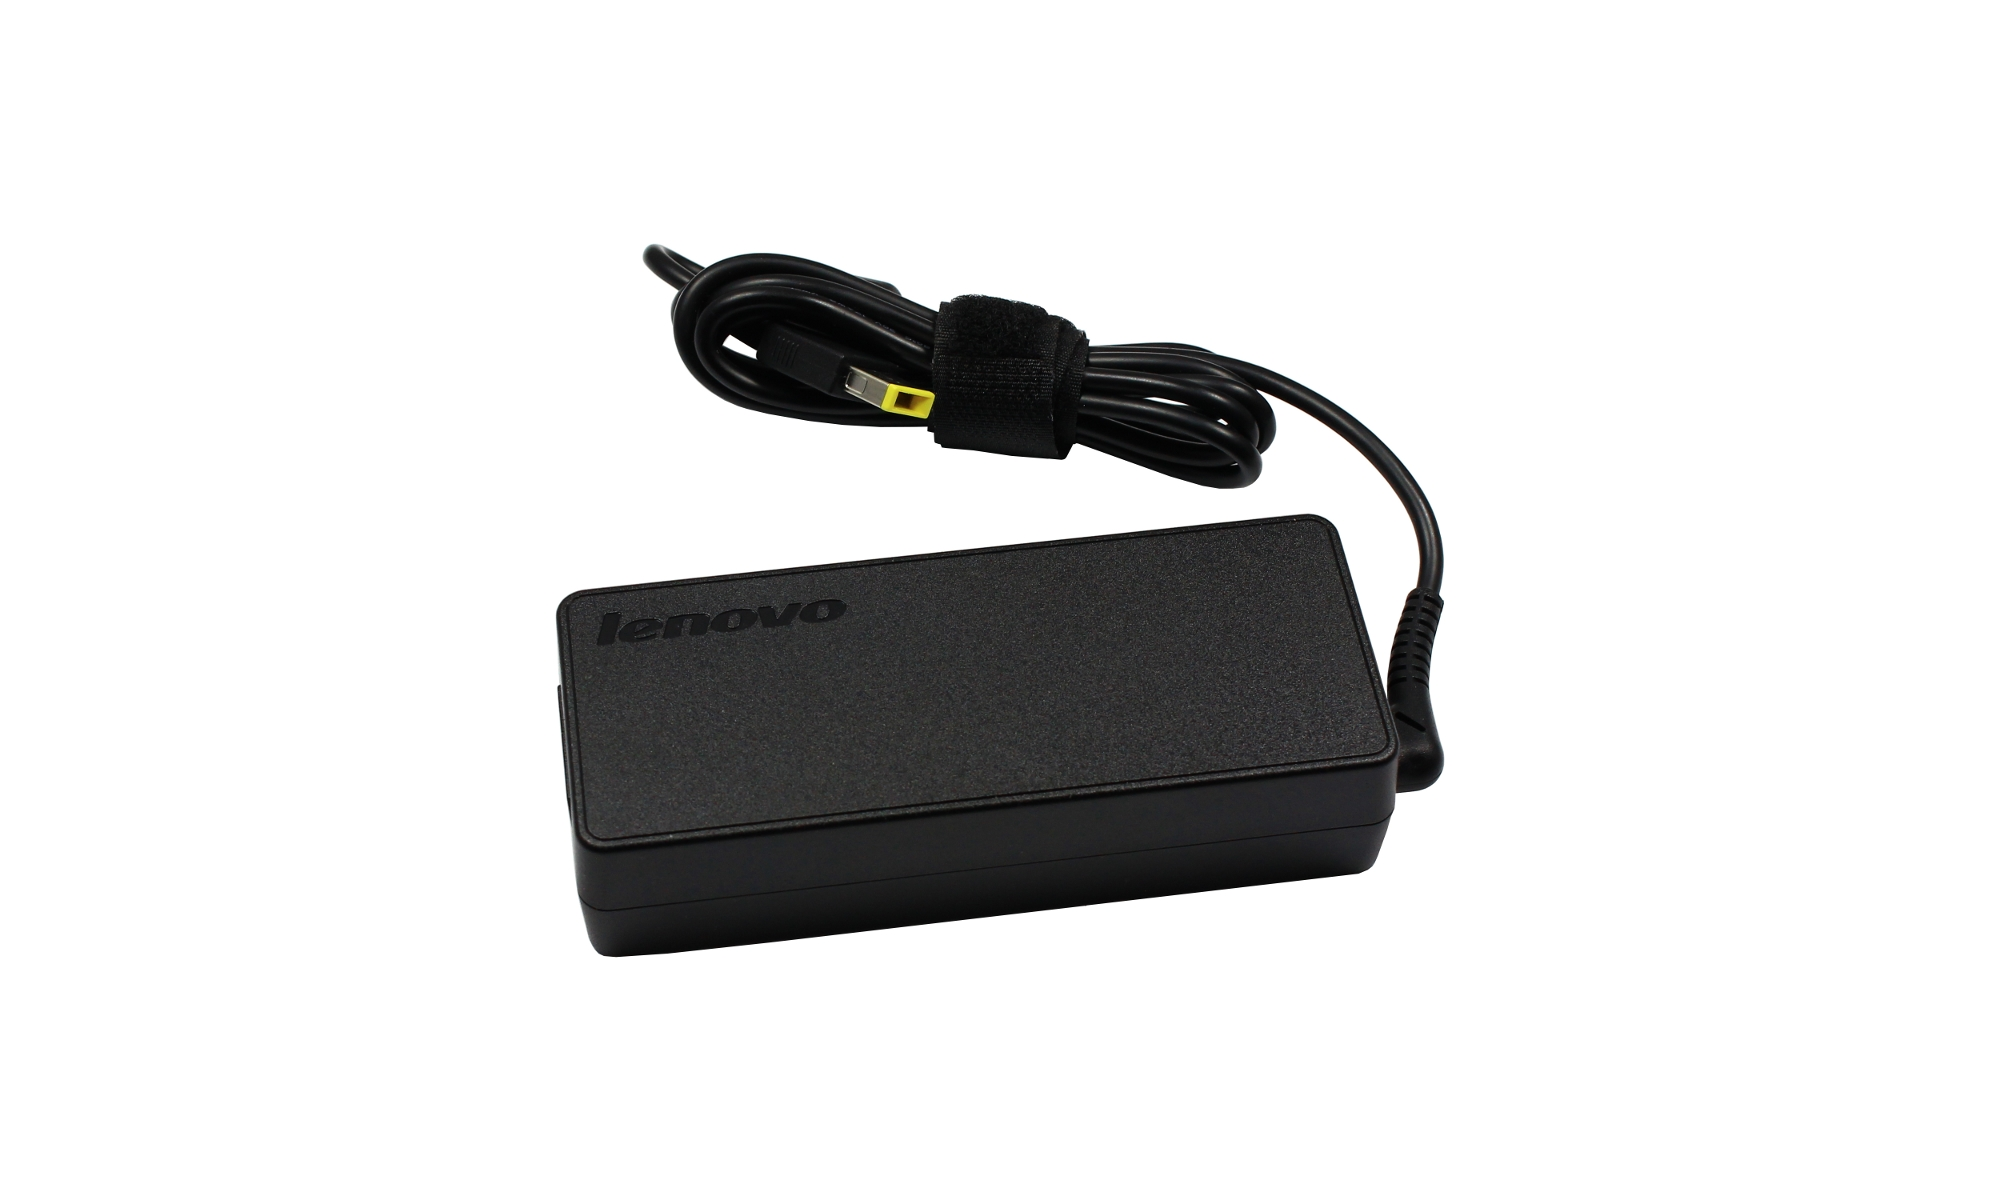 Docking station Lenovo ThinkPad OneLink+ Dock - 40A40090EU pentru ThinkPad 13, Yoga 260, Yoga 460, P40 Yoga, X1 Tablet, X1 Yoga, X1 Carbon 4th gen